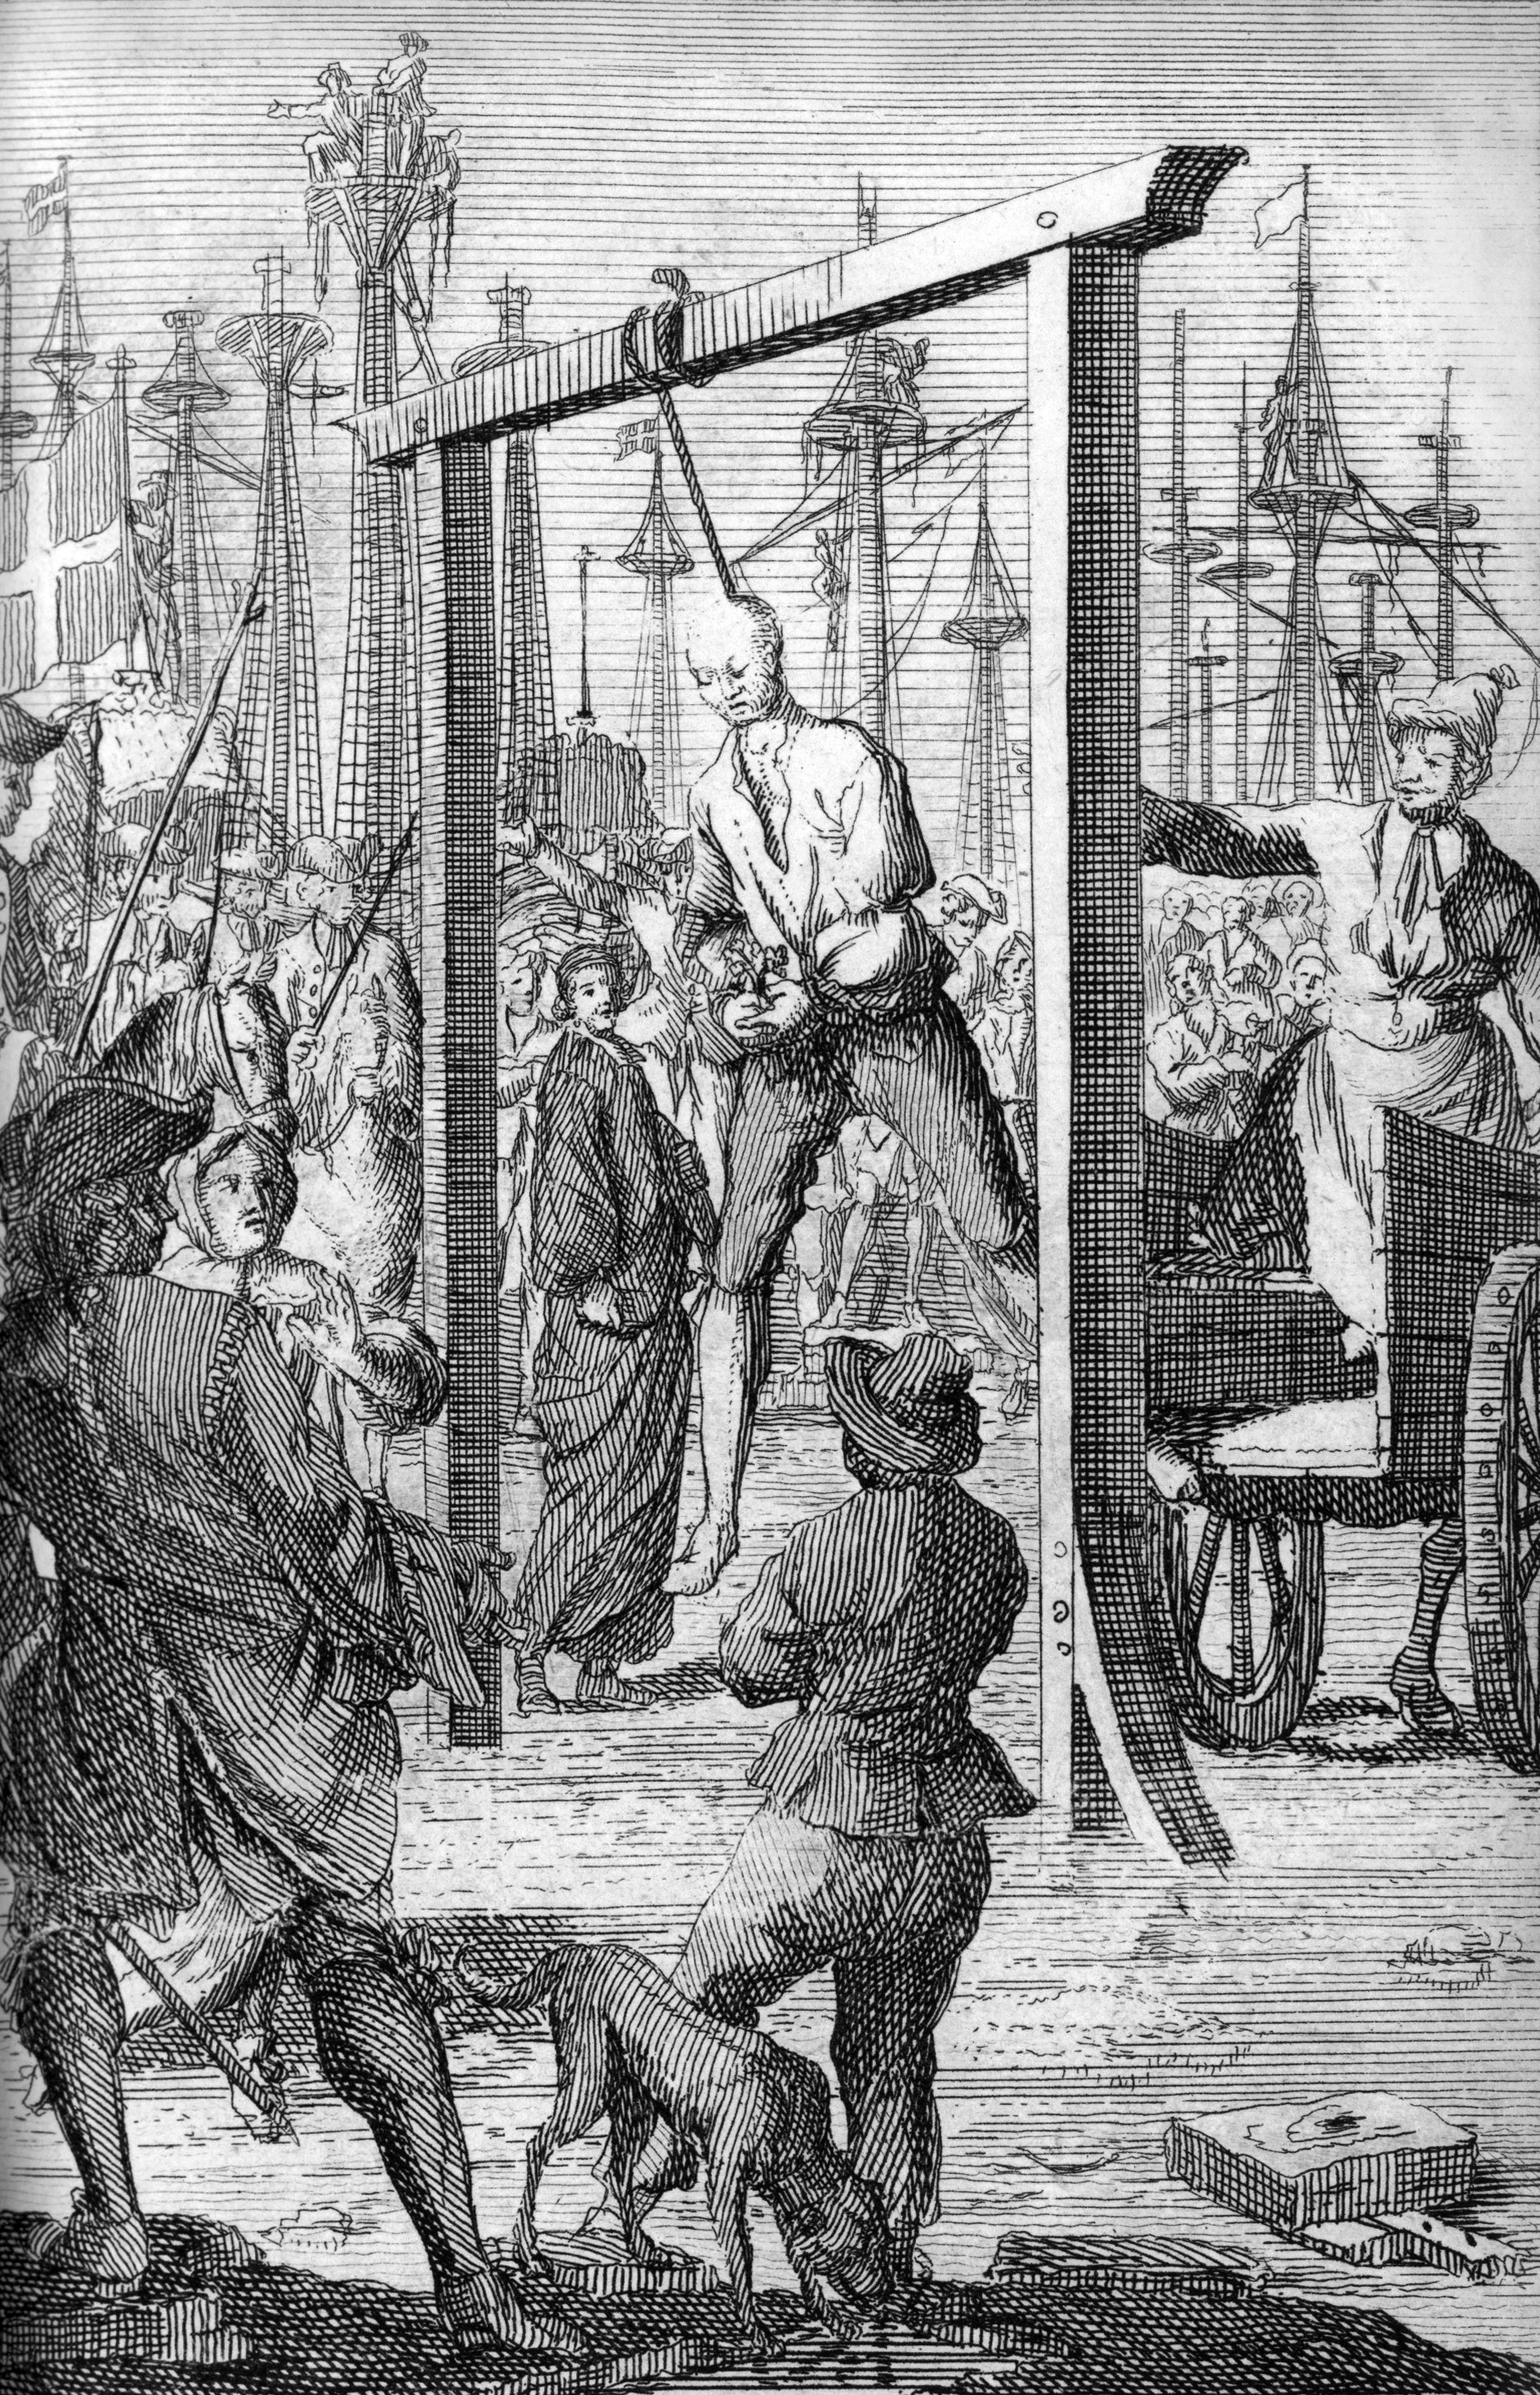 The hanging of Stede Bonnet